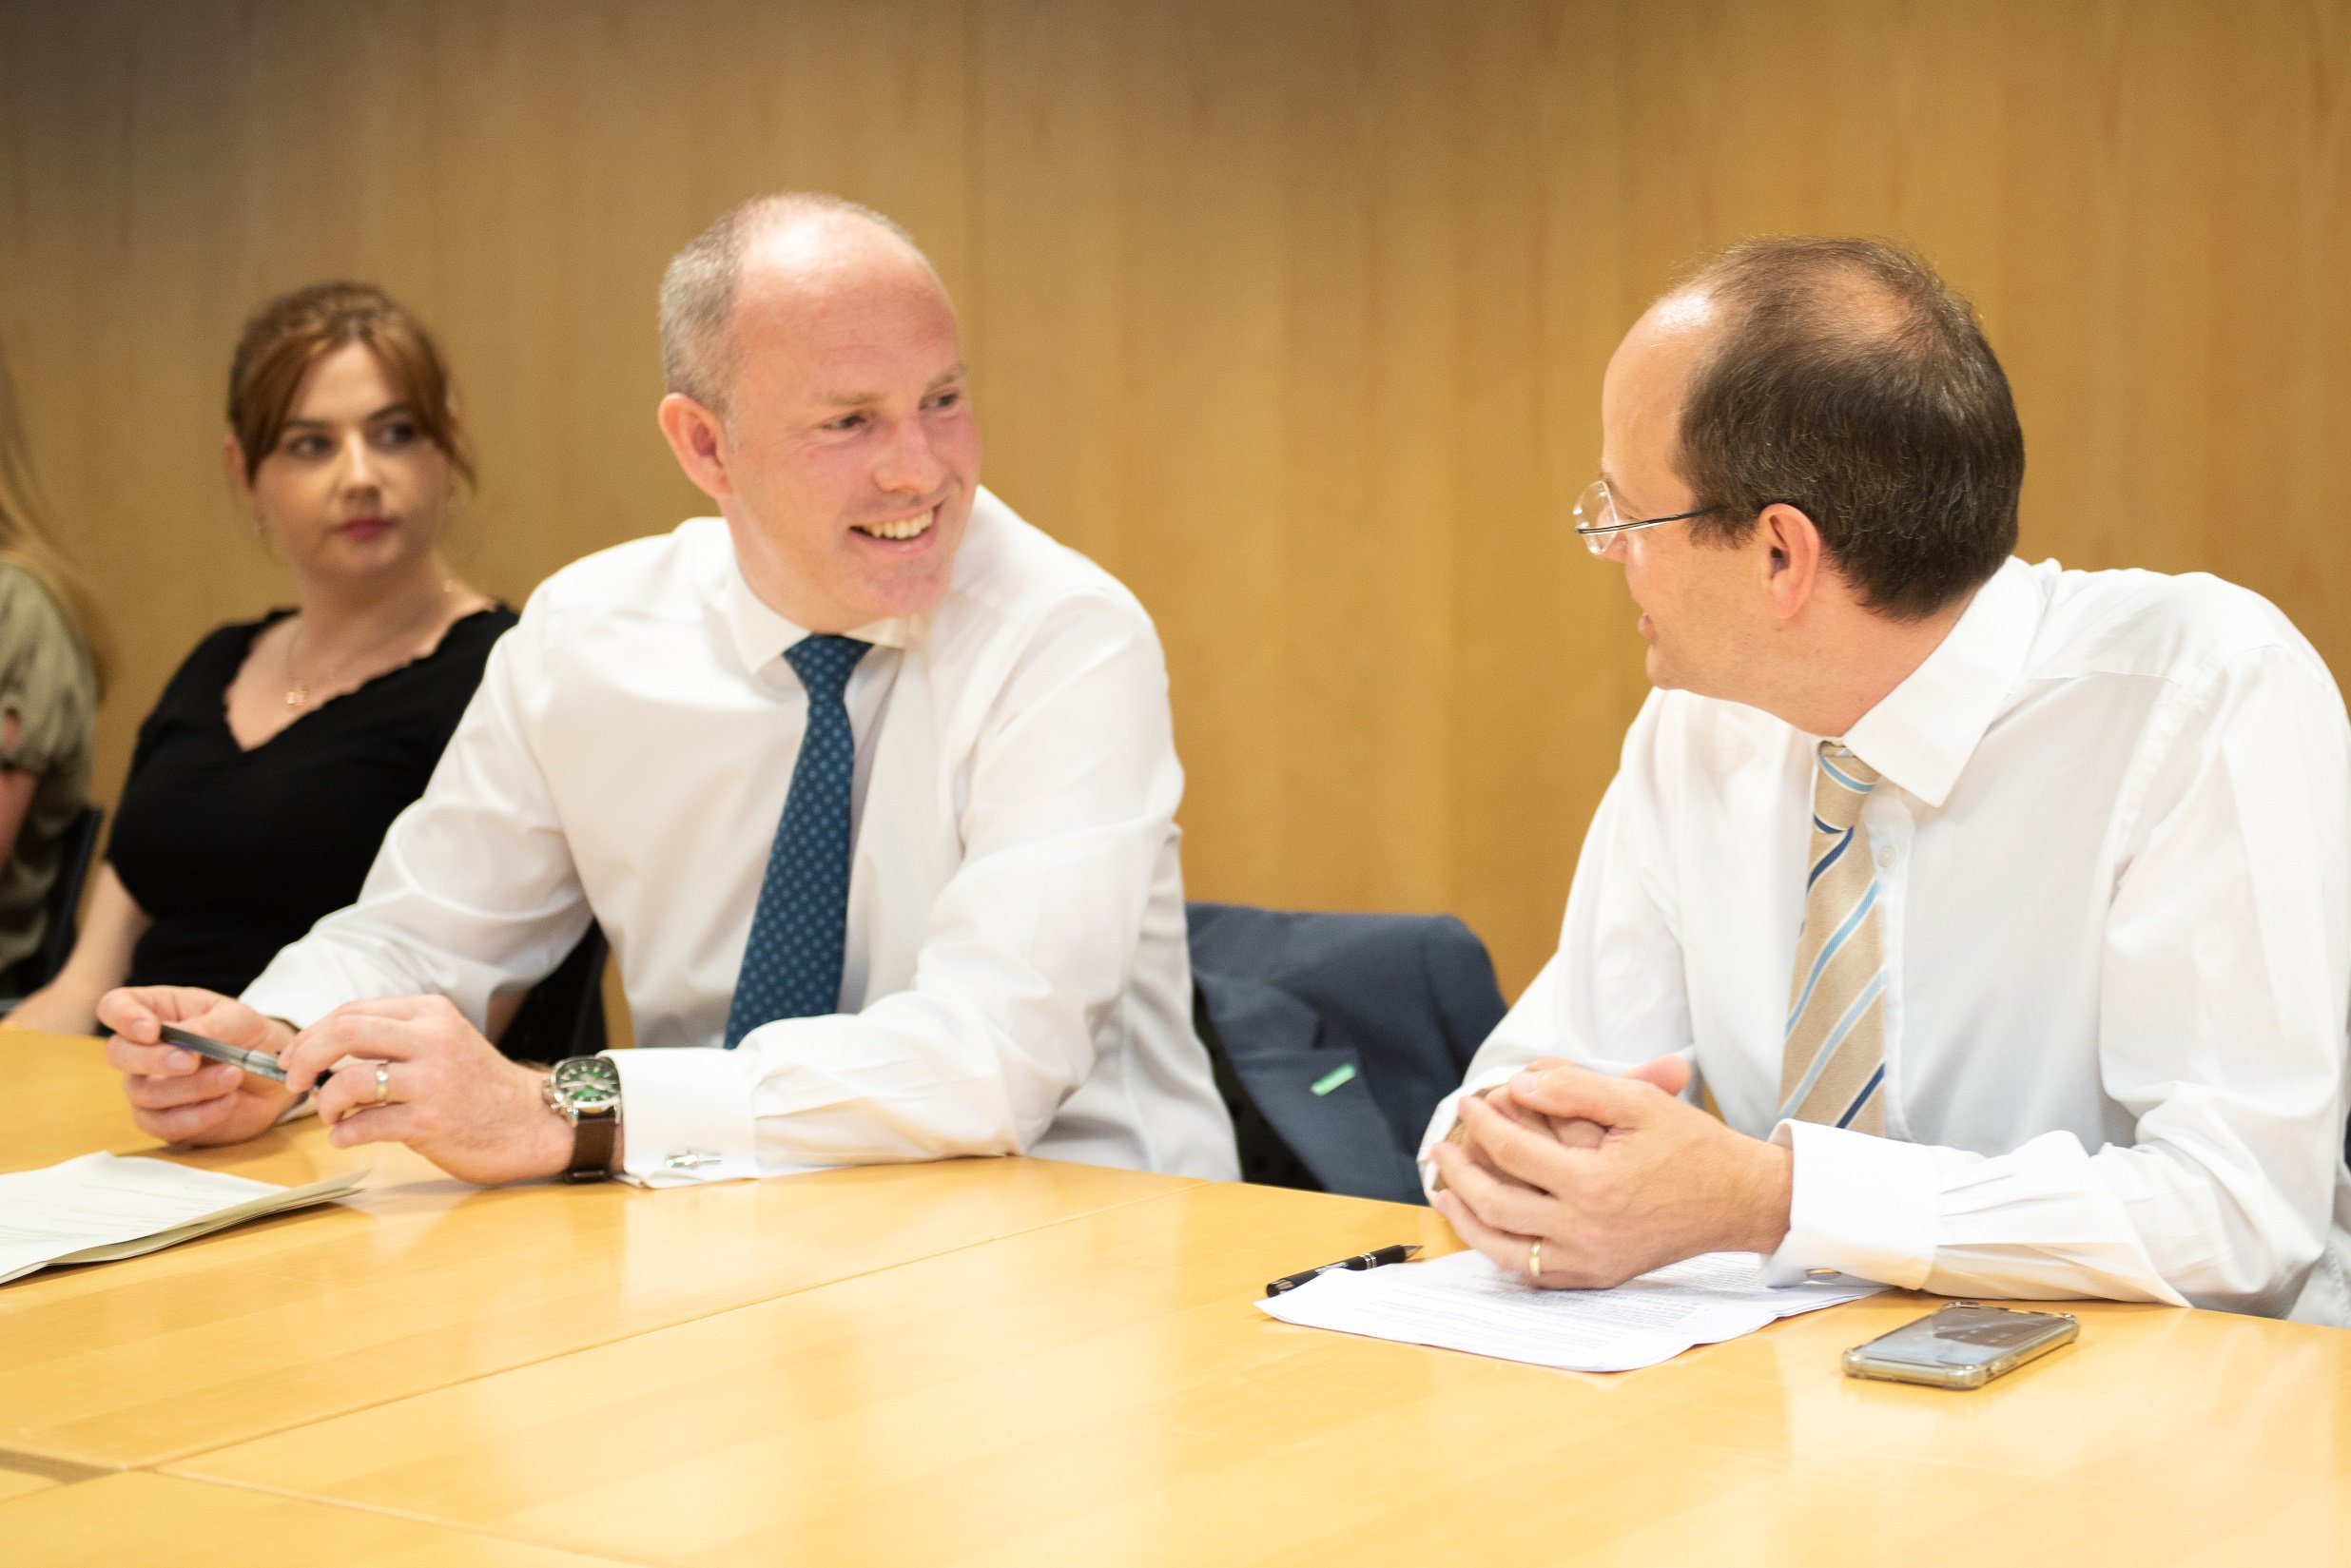 Justin Welcomes Praise For DWP COVID Response